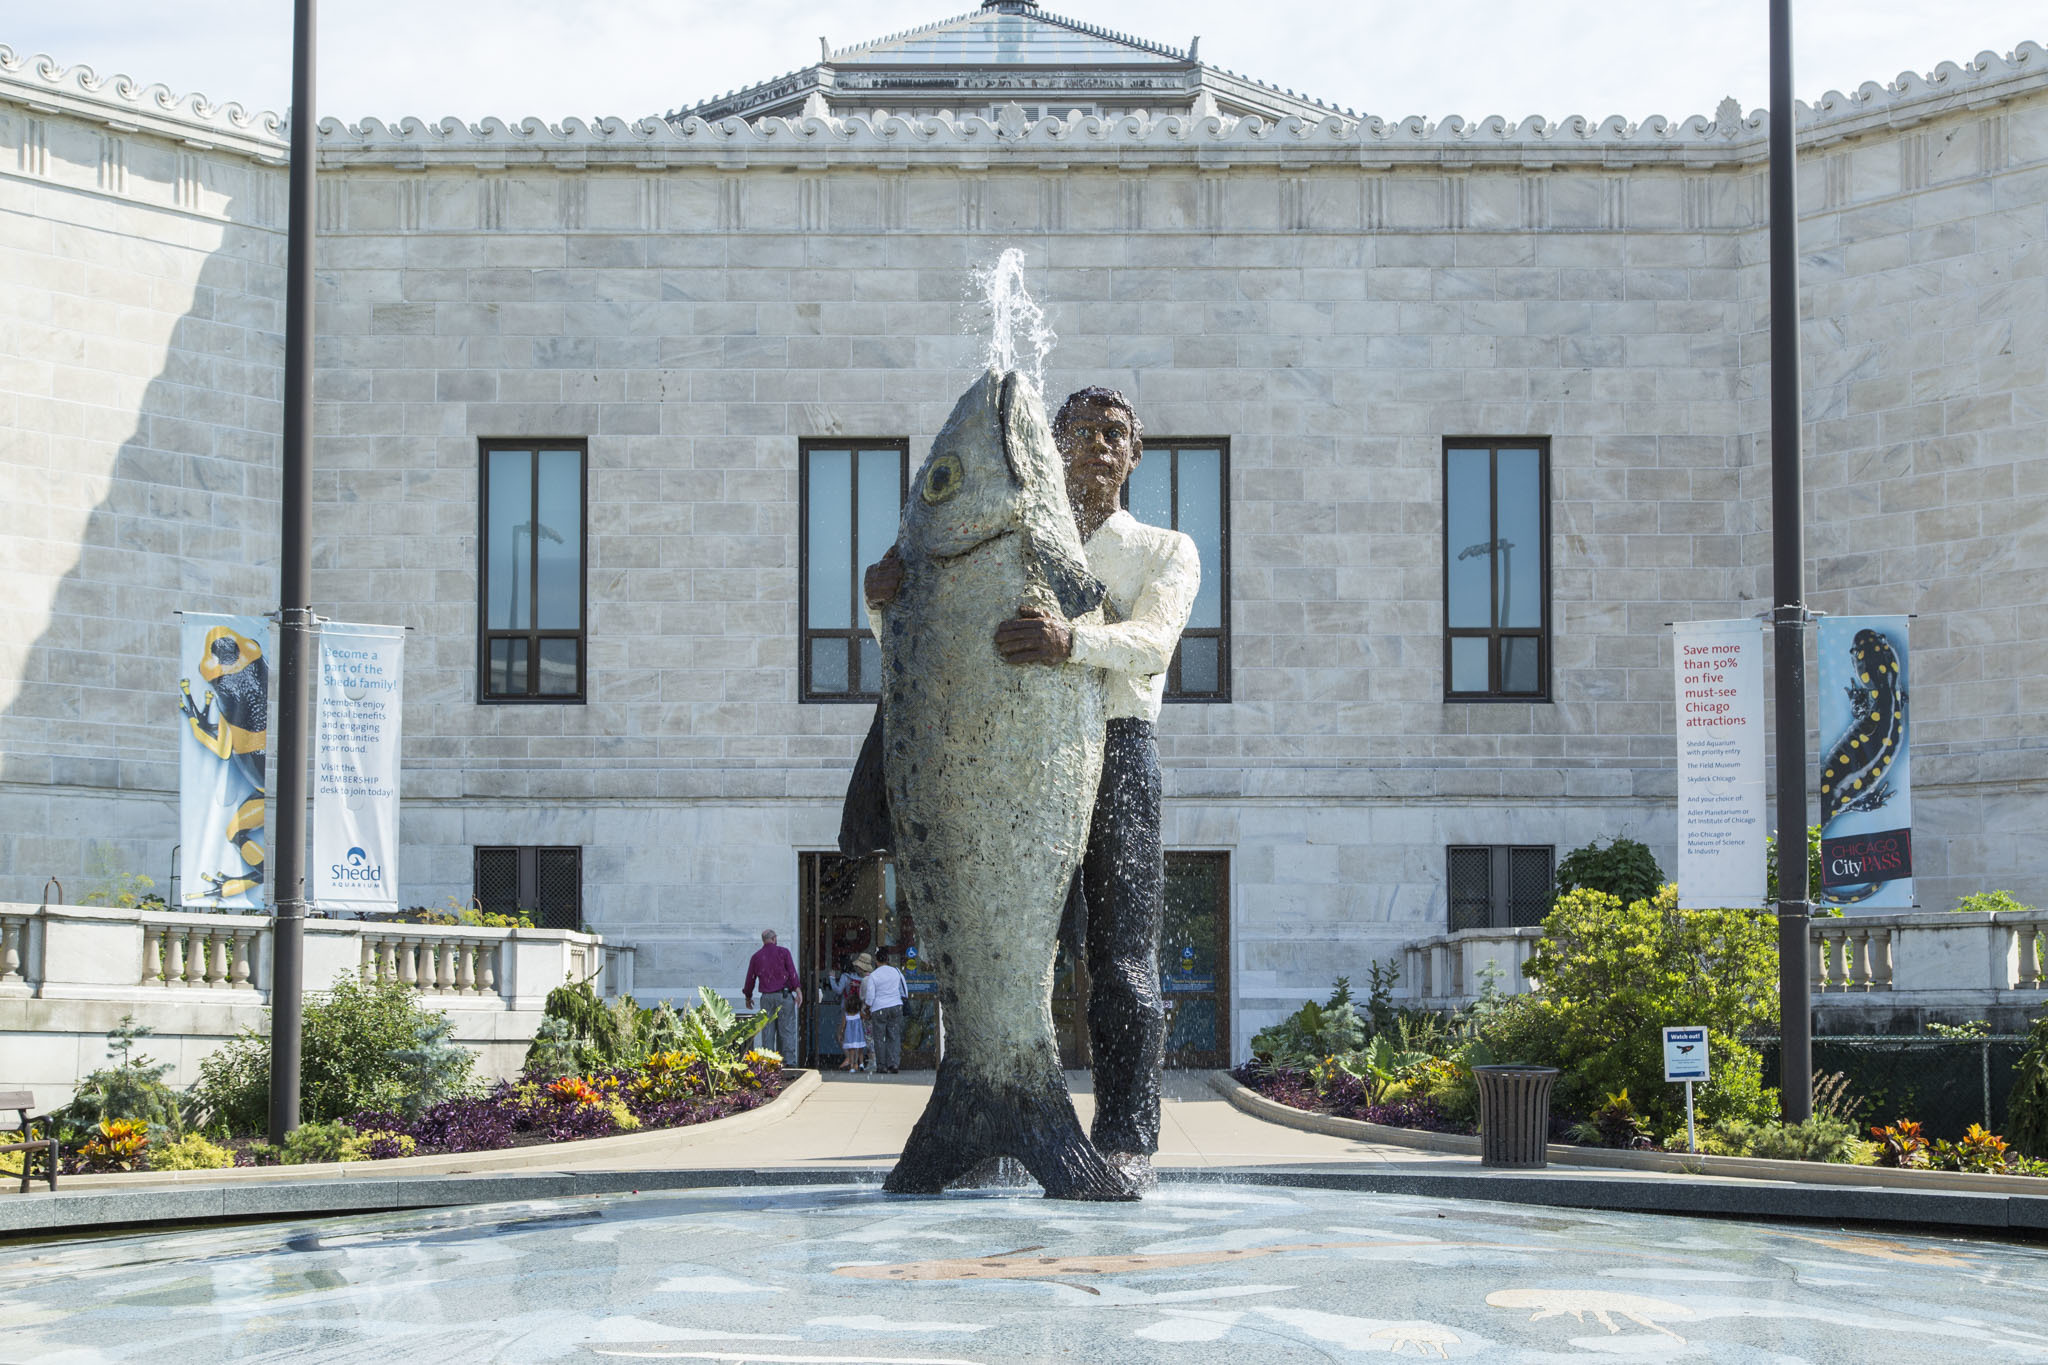 Man with Fish Sculpture